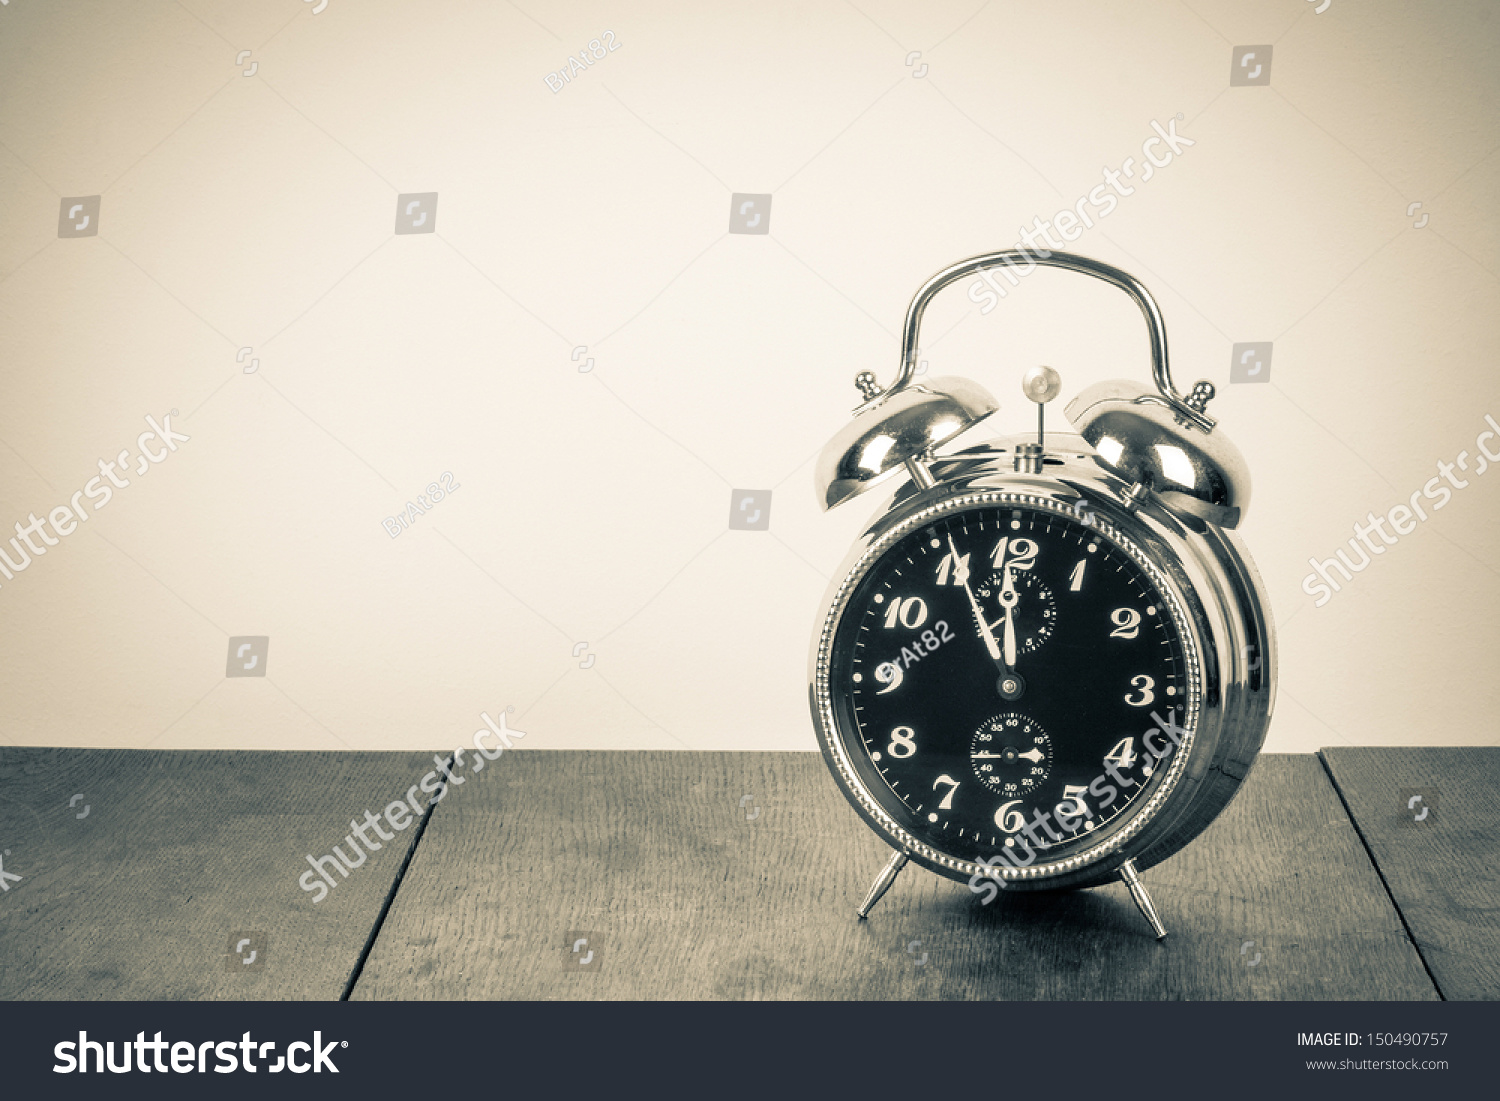 Vintage background with retro alarm clock on table #150490757